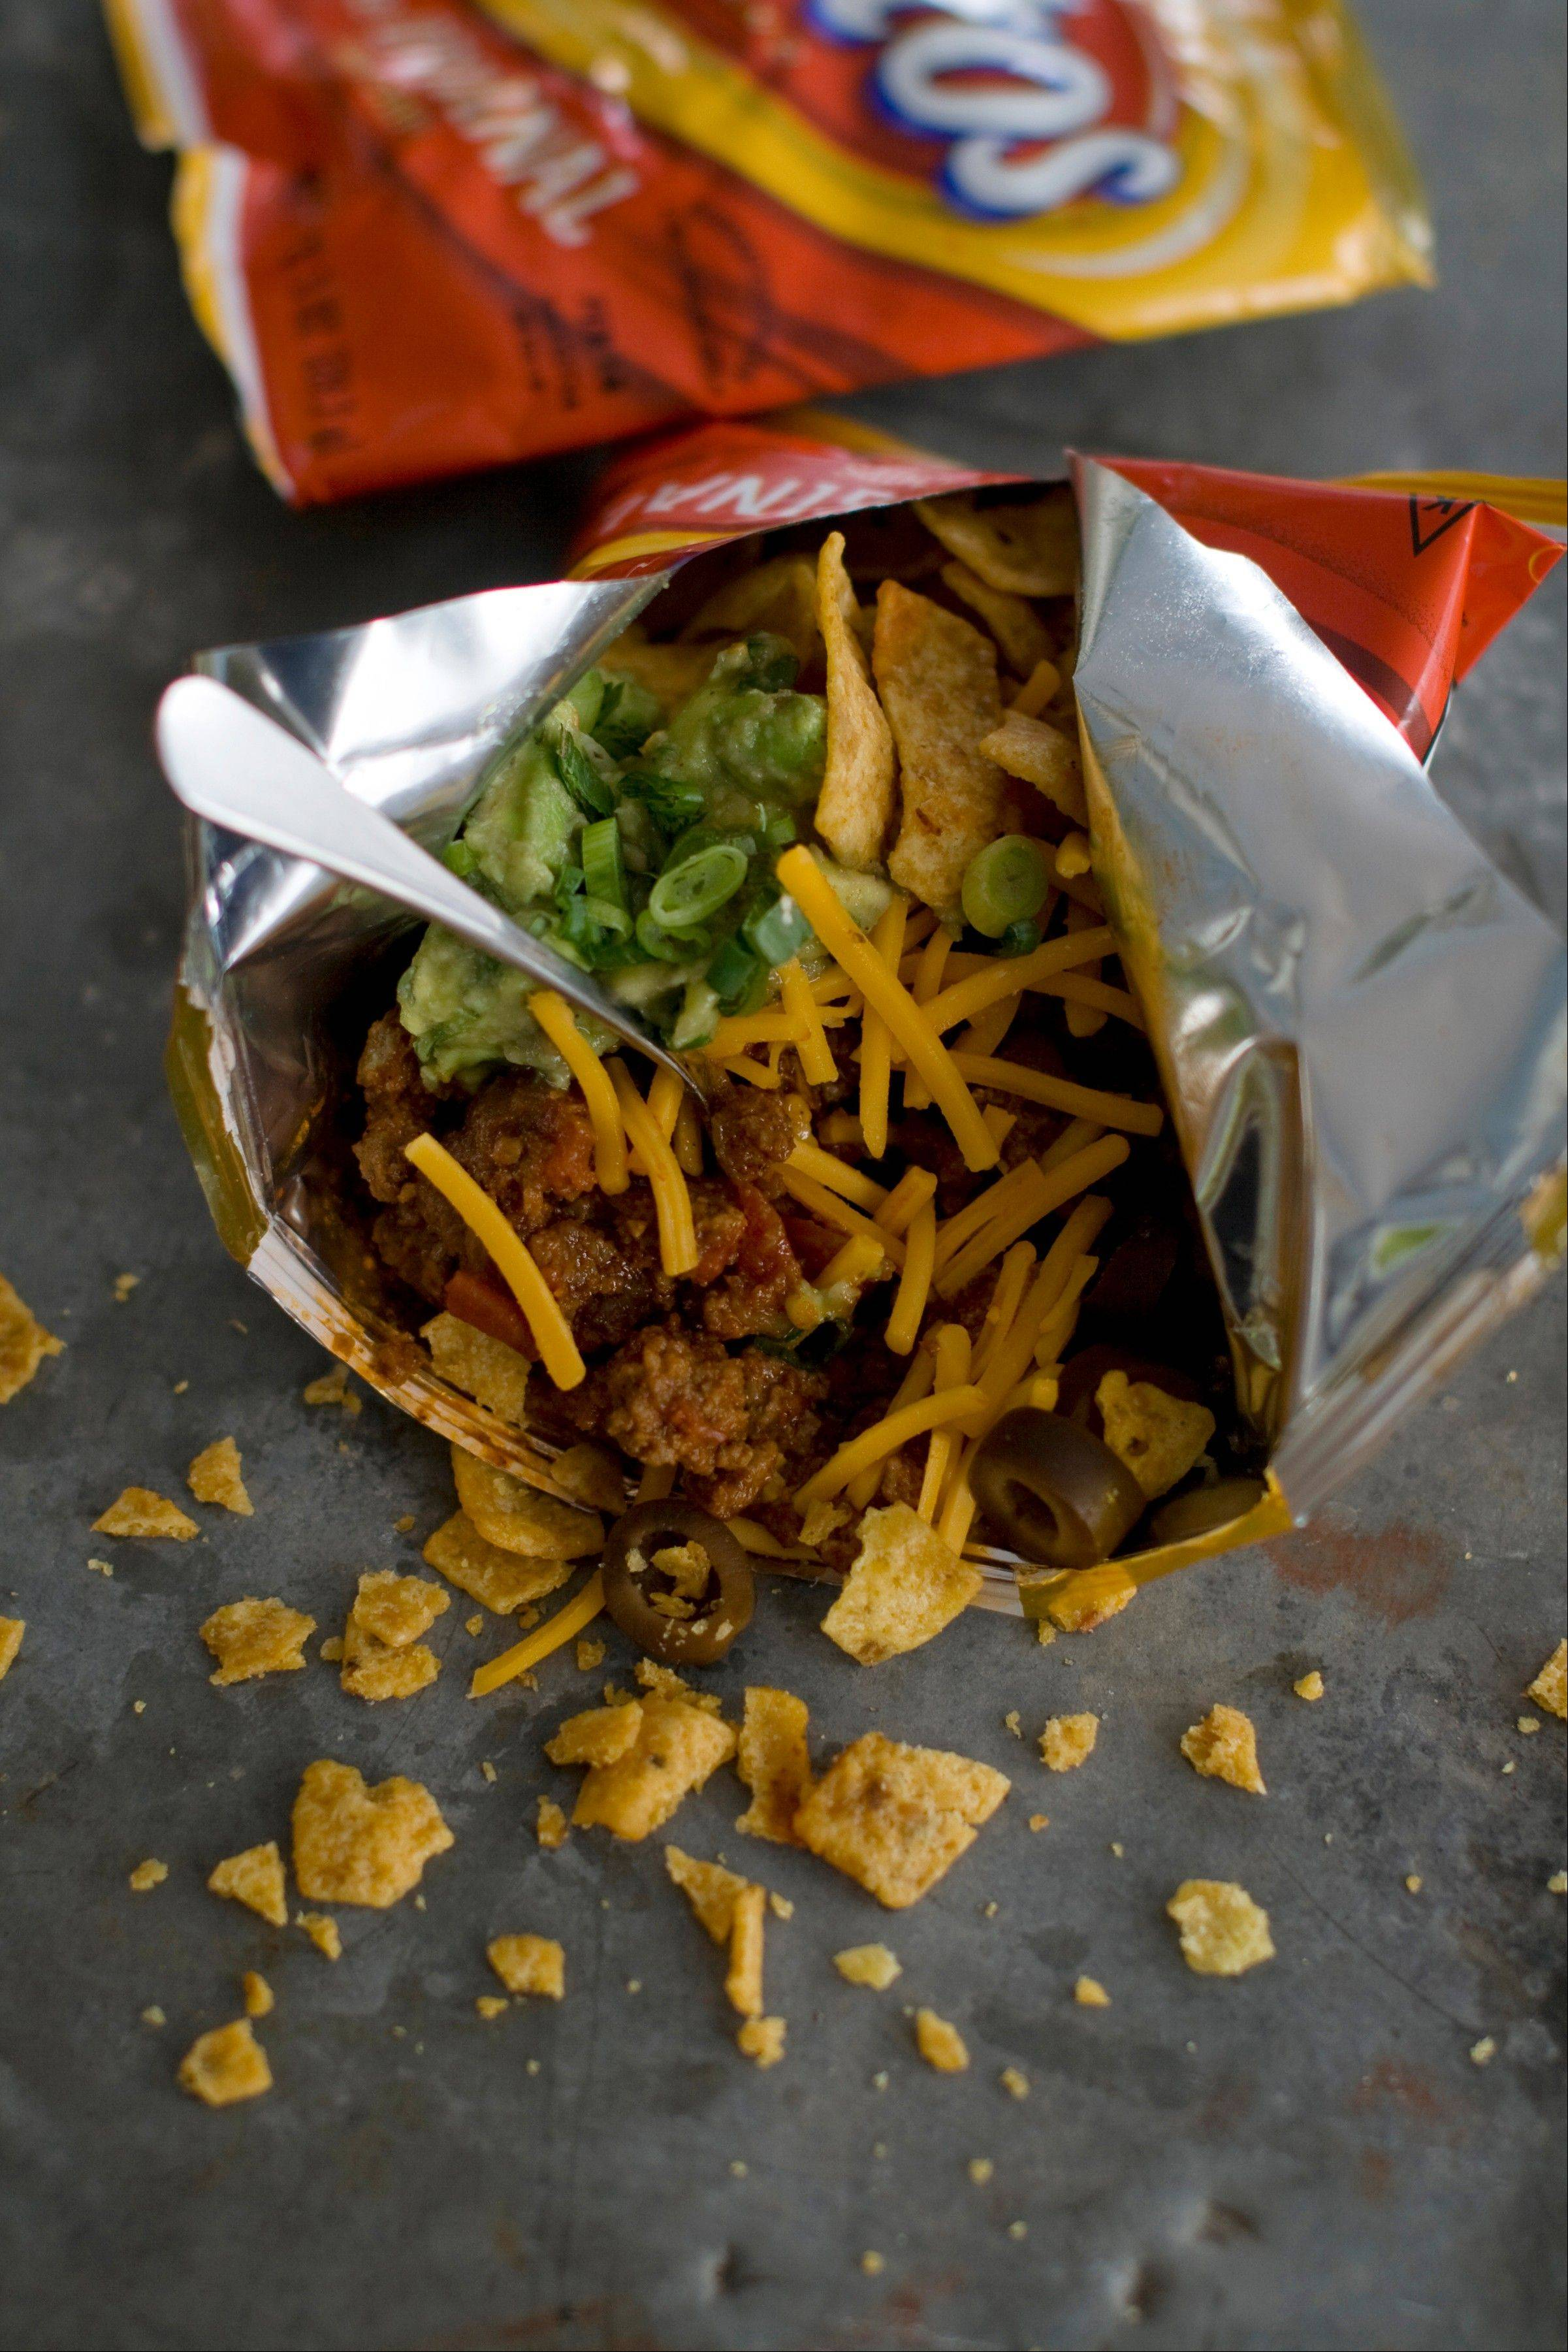 A walking taco is a variety of toppings dumped into a snack-size bag of Fritos and eaten right from the bag.